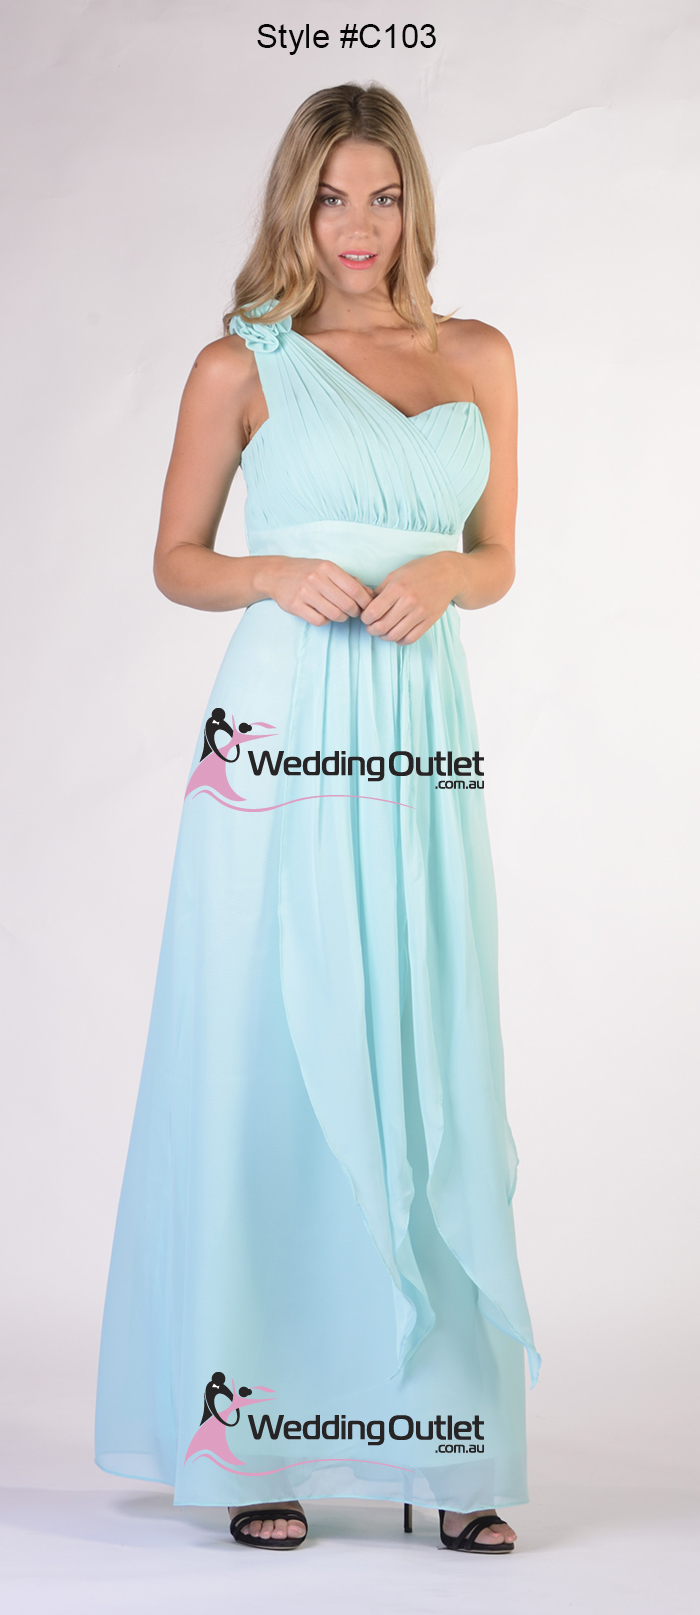 Dusty pink bridesmaid dresses style c103 weddingoutlet ombrellifo Gallery